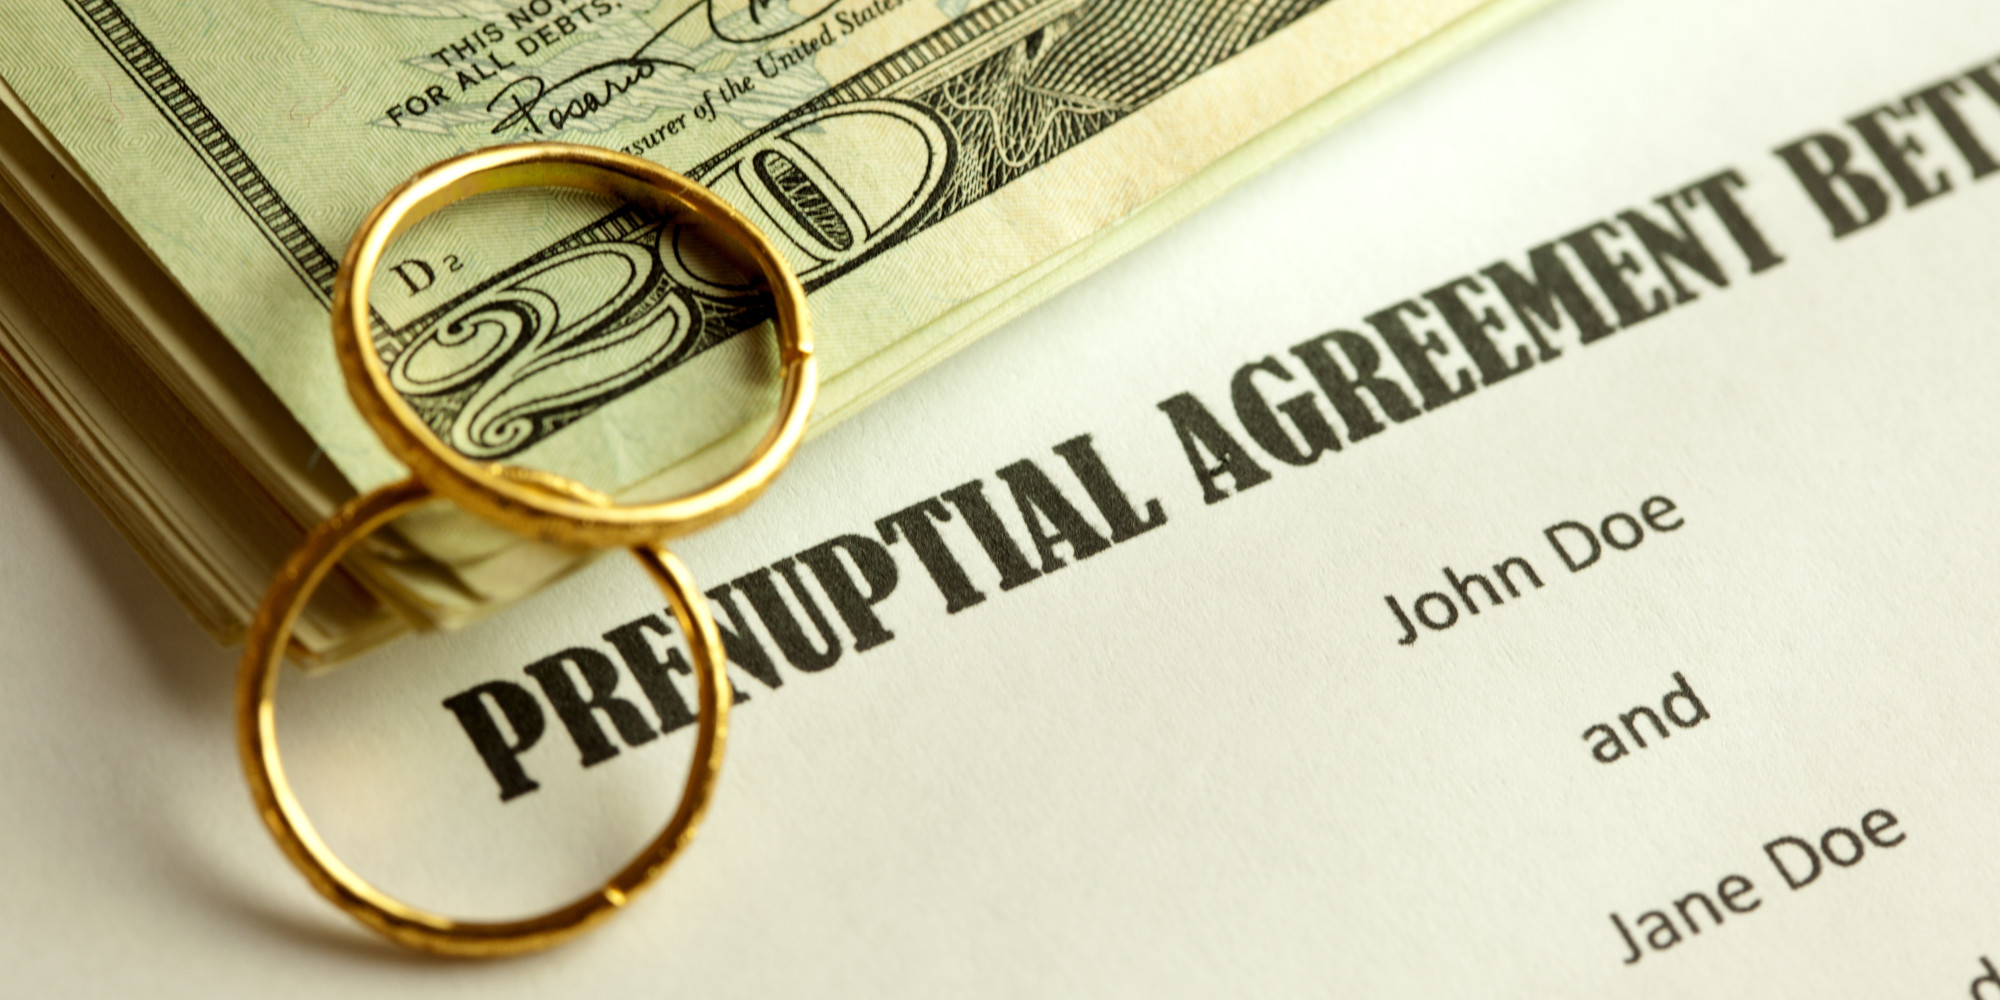 prenuptial agreement Thai marriage laws, prenuptial agreement in thailand as a pre-marriage contract deal with property and debts of prospective husband and wife, as a private contract requires registration in the marriage register and cannot be against the law or good morals.